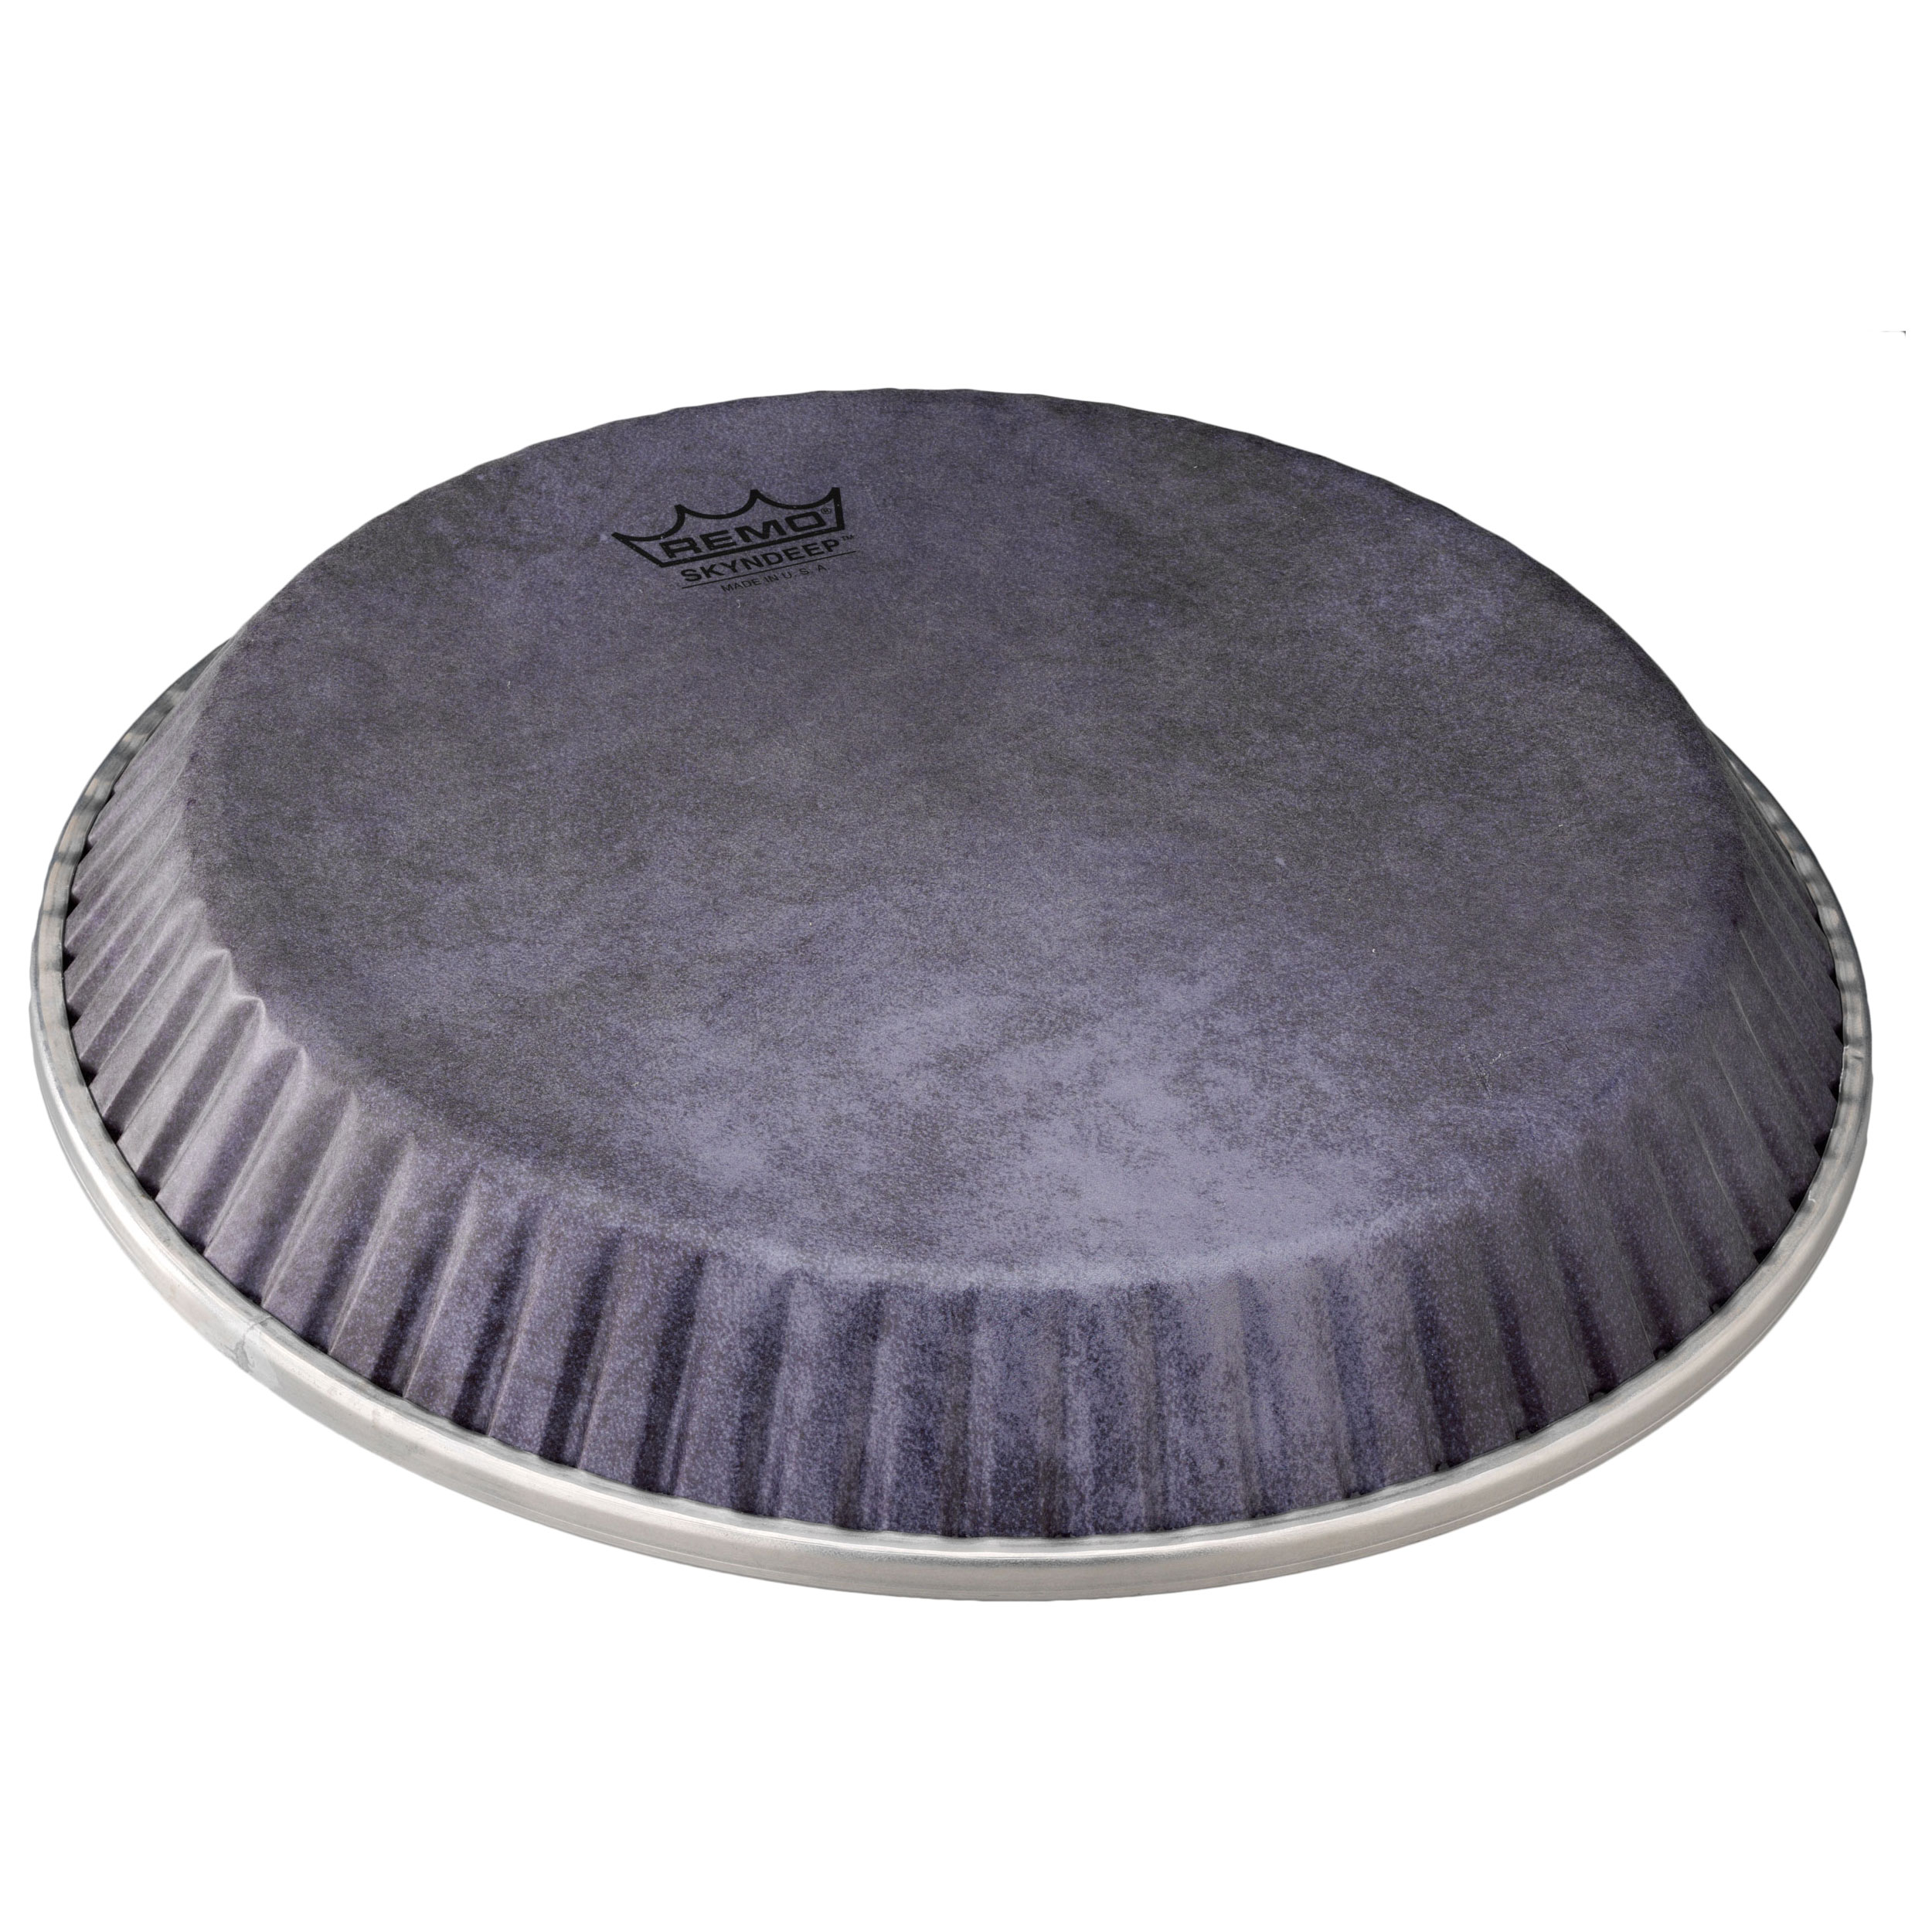 """Remo 13"""" Symmetry Skyndeep Conga Drum Head (D1 Collar) with Black Calfskin Graphic"""